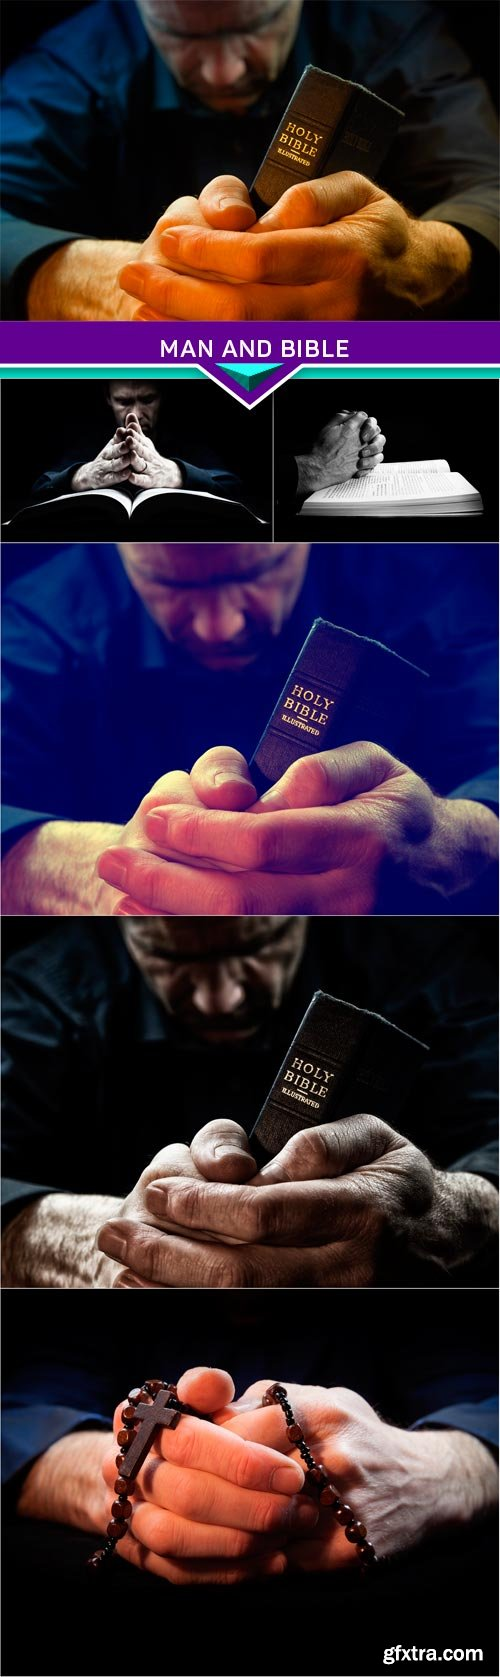 Man and Bible 6x JPEG